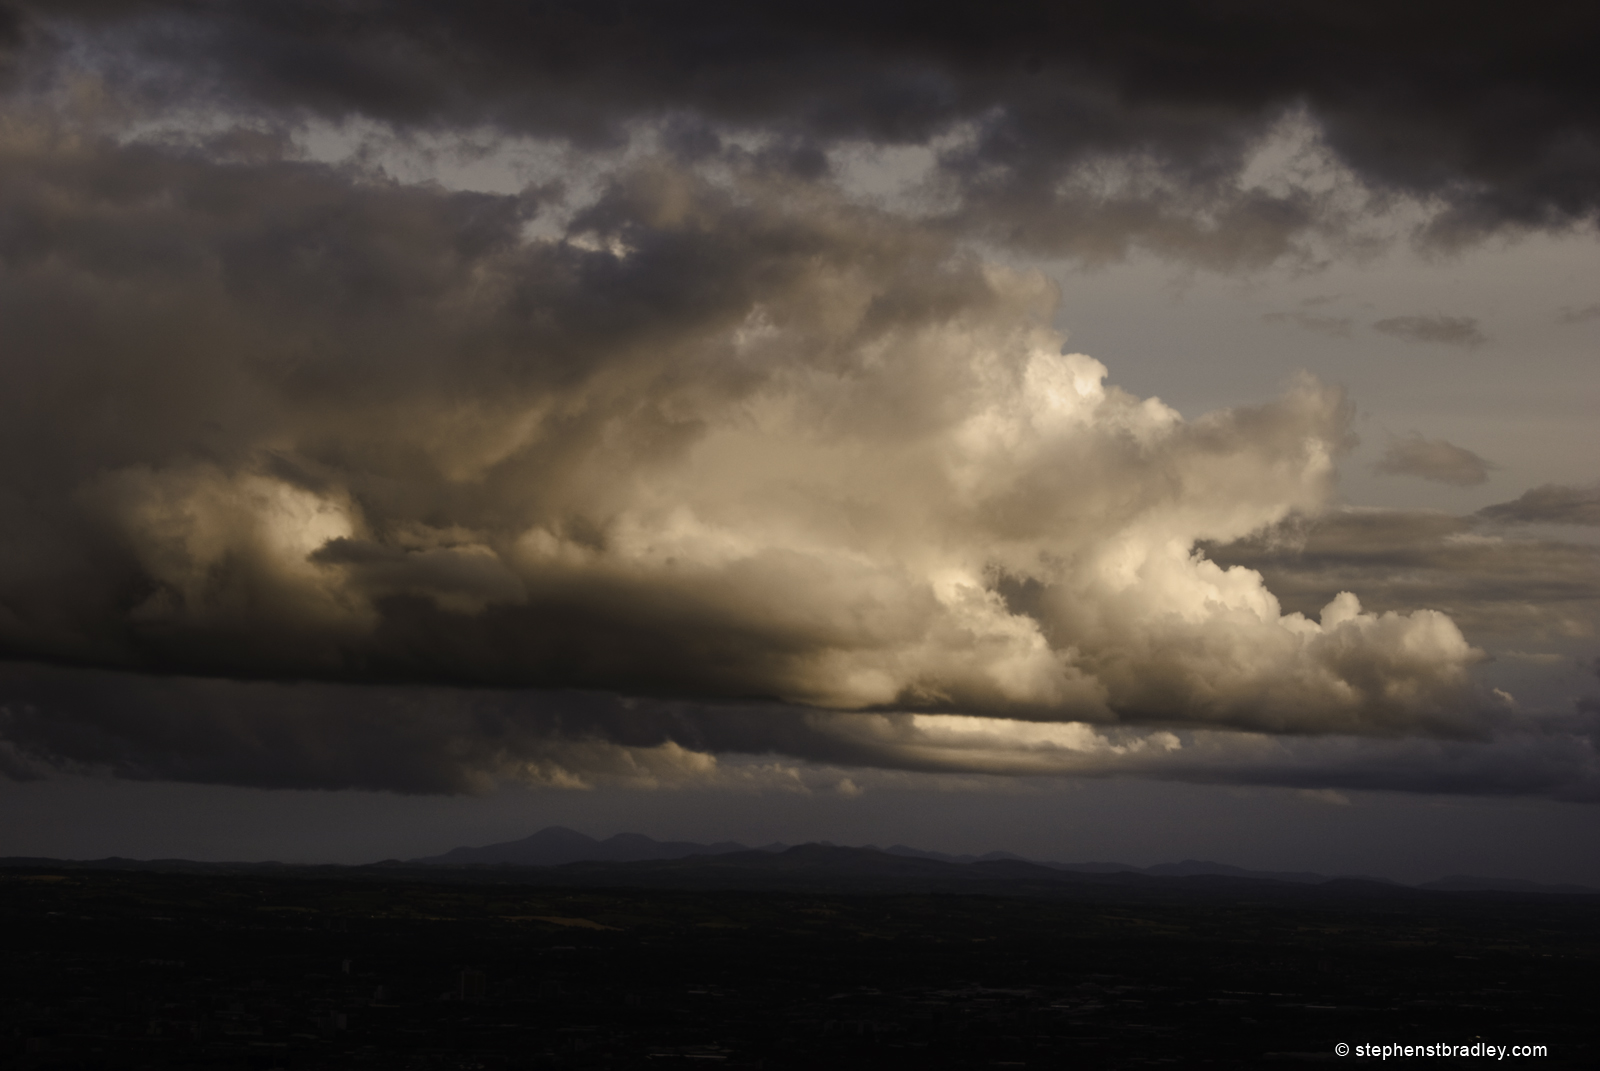 Evening clouds over the Mourne Mountains, from the Cavehill, Northern Ireland.